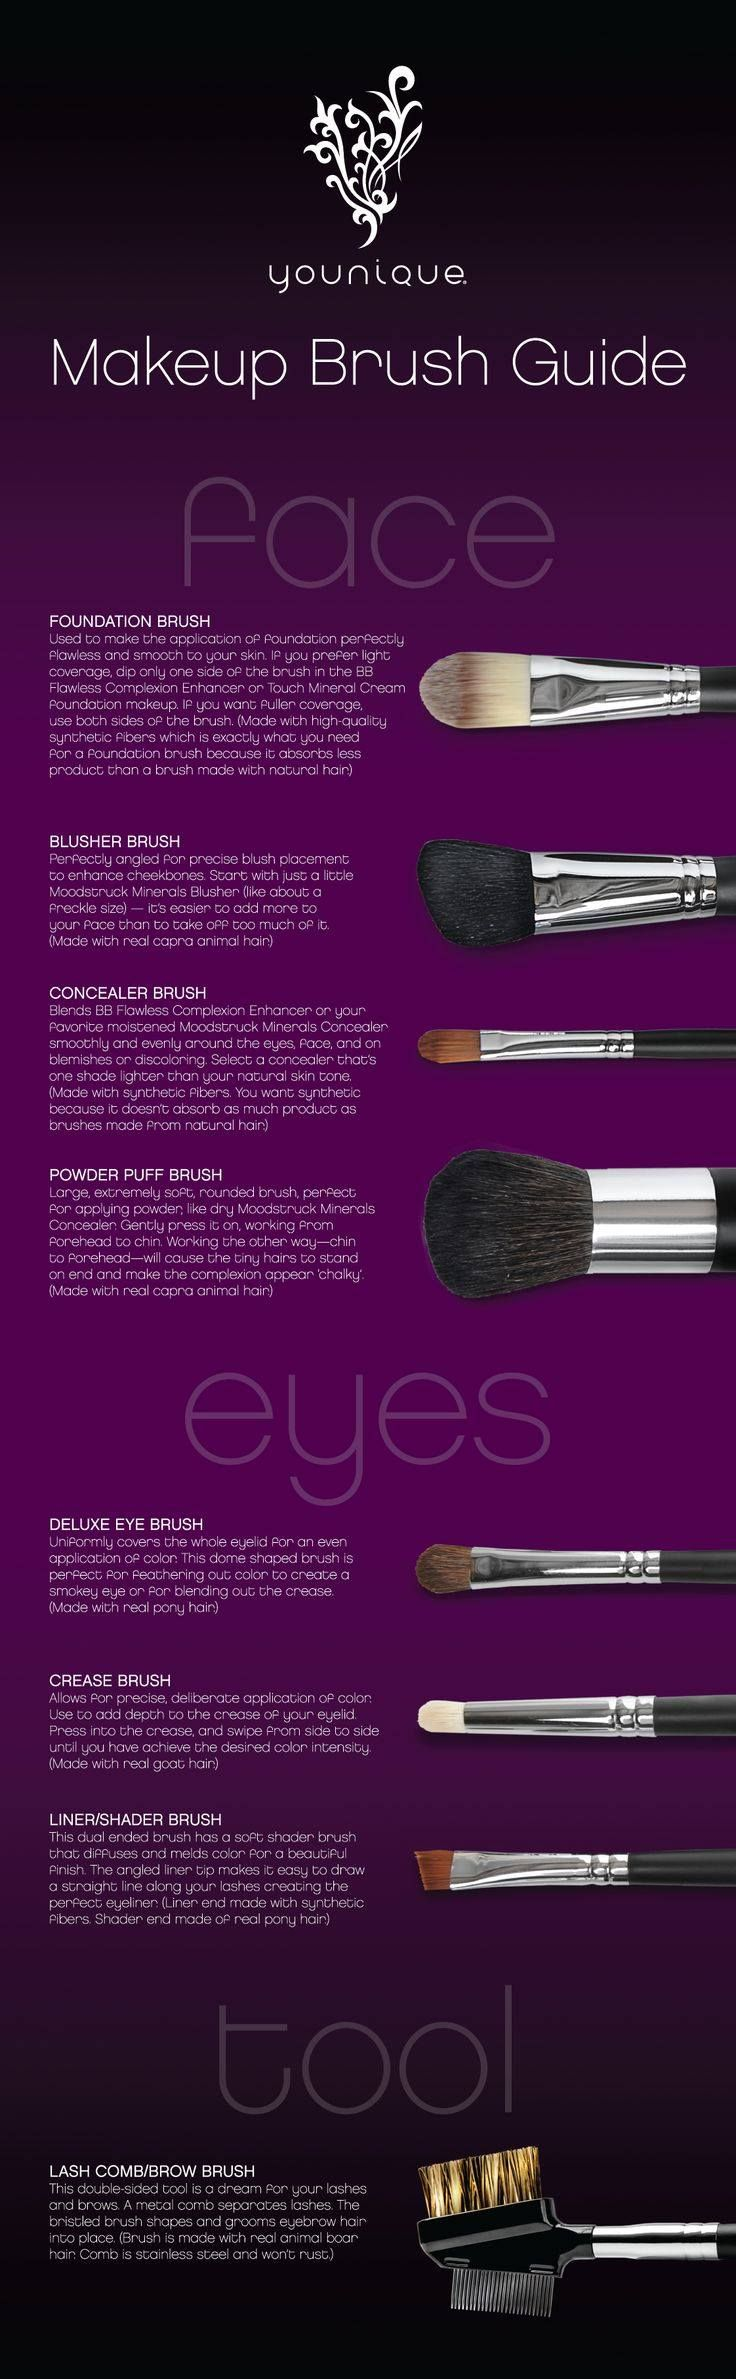 Know what Younique brushes to use and what to use them for... Love guides like this! Time to become a makeup expert!  https://www.youniqueproducts.com/andreahedberg/products/view/US-2007-00